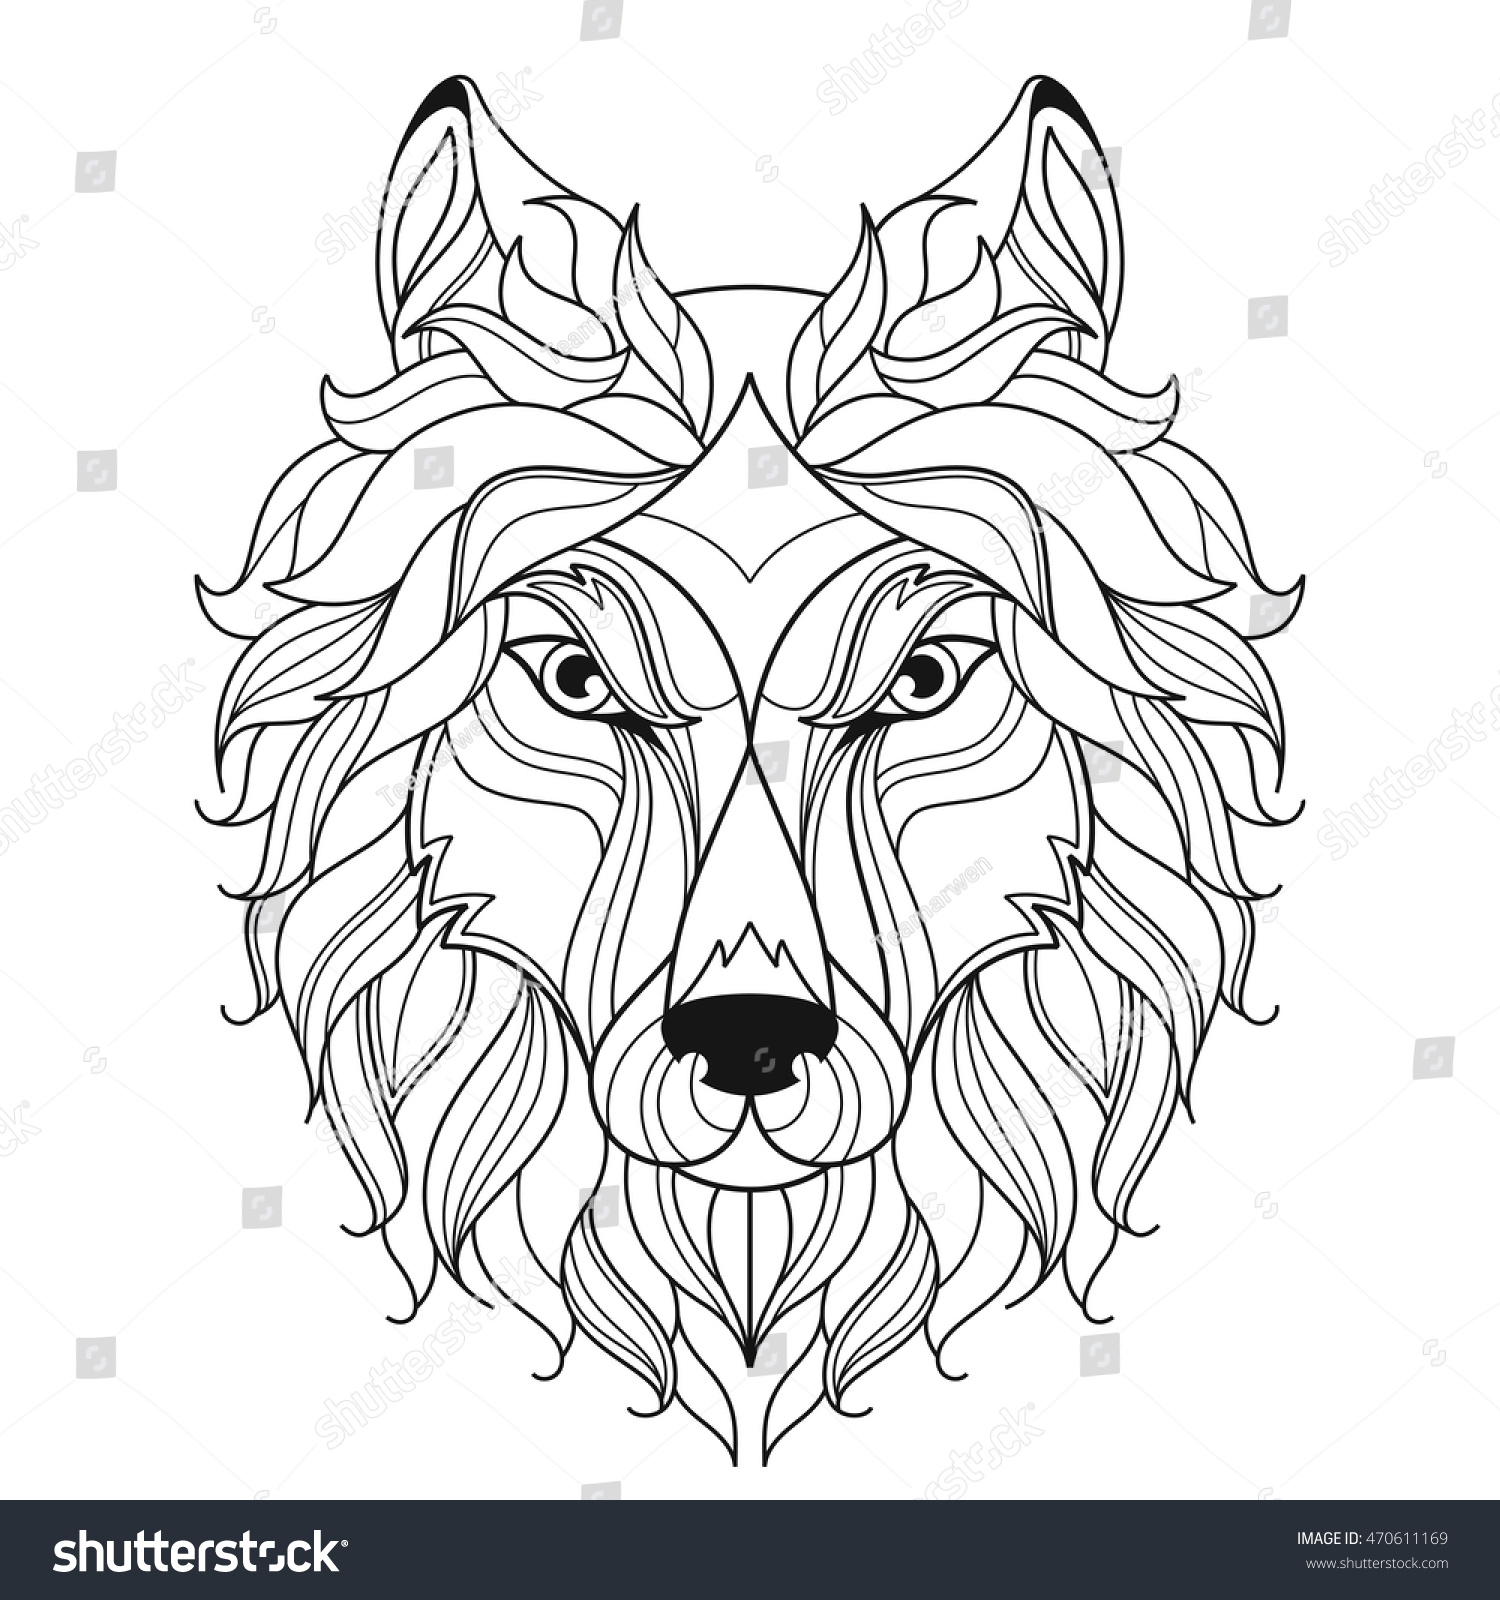 Wolf Head Zentangle Stylized Coloring Page Stock Vector 470611169